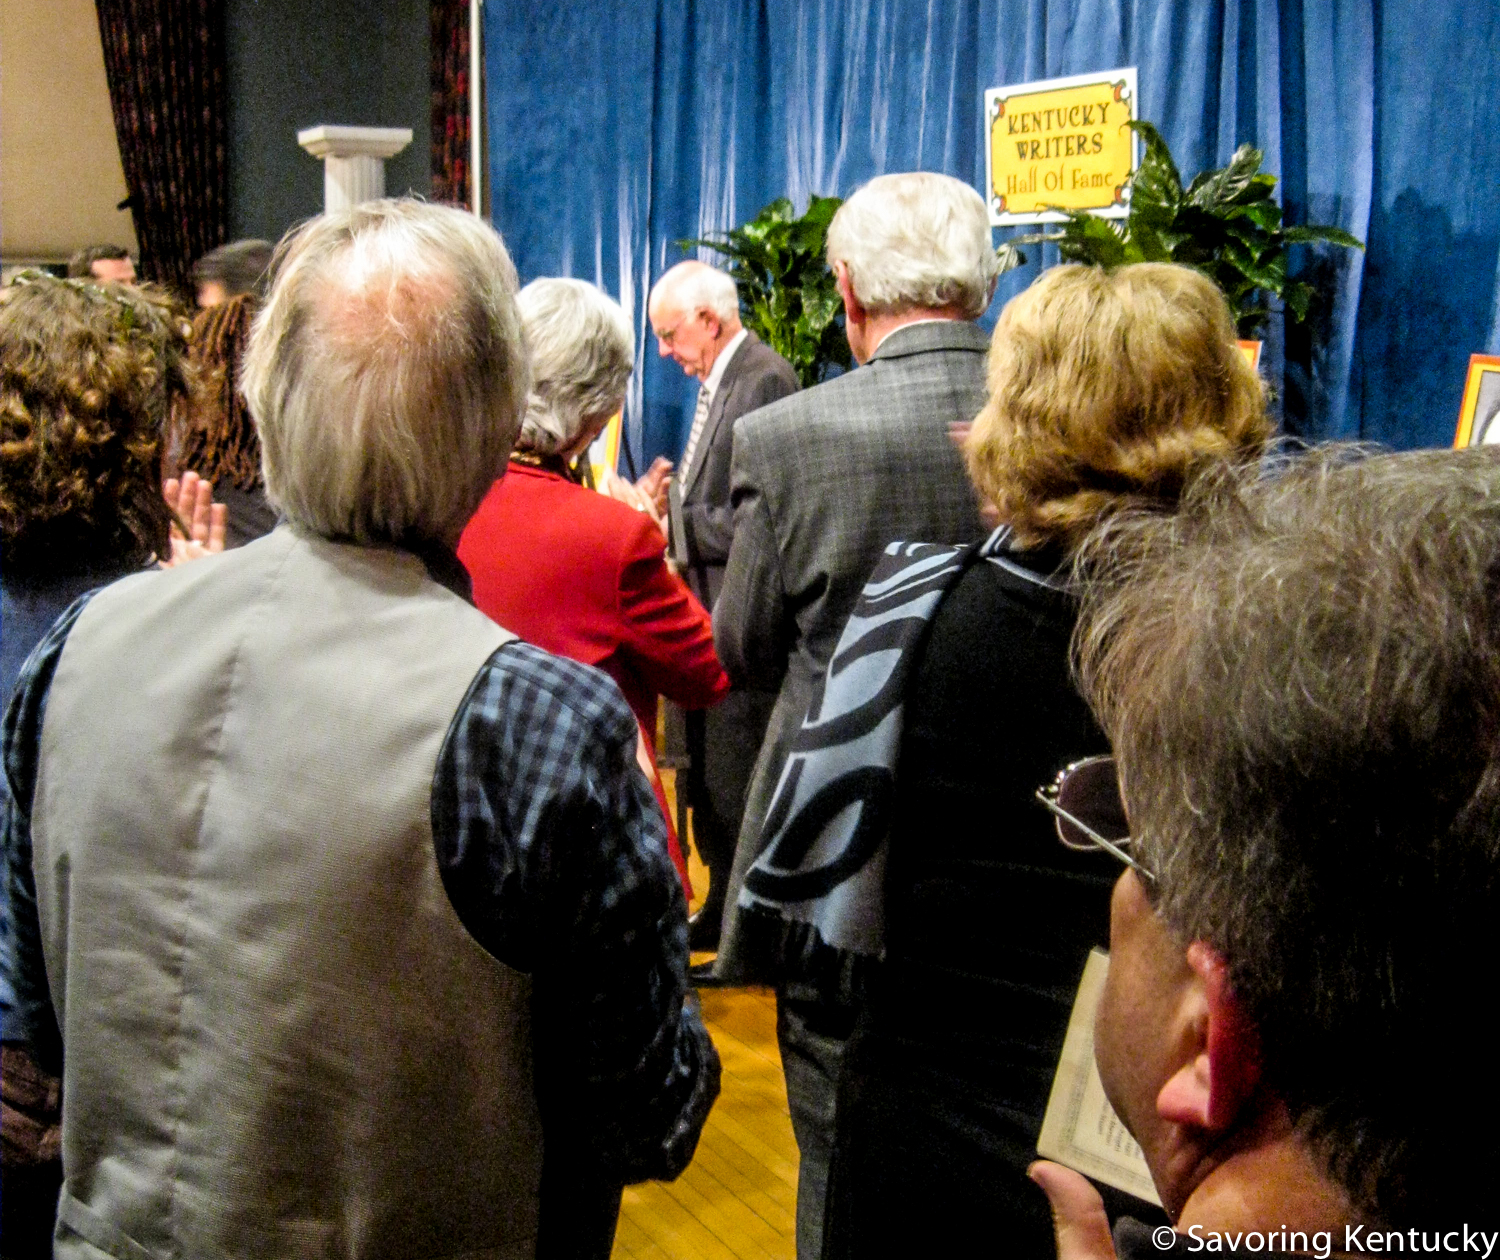 Wendell Berry at center. From back left, photographer and artist Guy Mendes in vest, Kentucky Lieutenant Governor Crit Luallen in red. From back right, Kentucky Monthly editor and publisher Steve Vest, Kentucky Arts Council director Lori Meadows, Lynn Luallen.